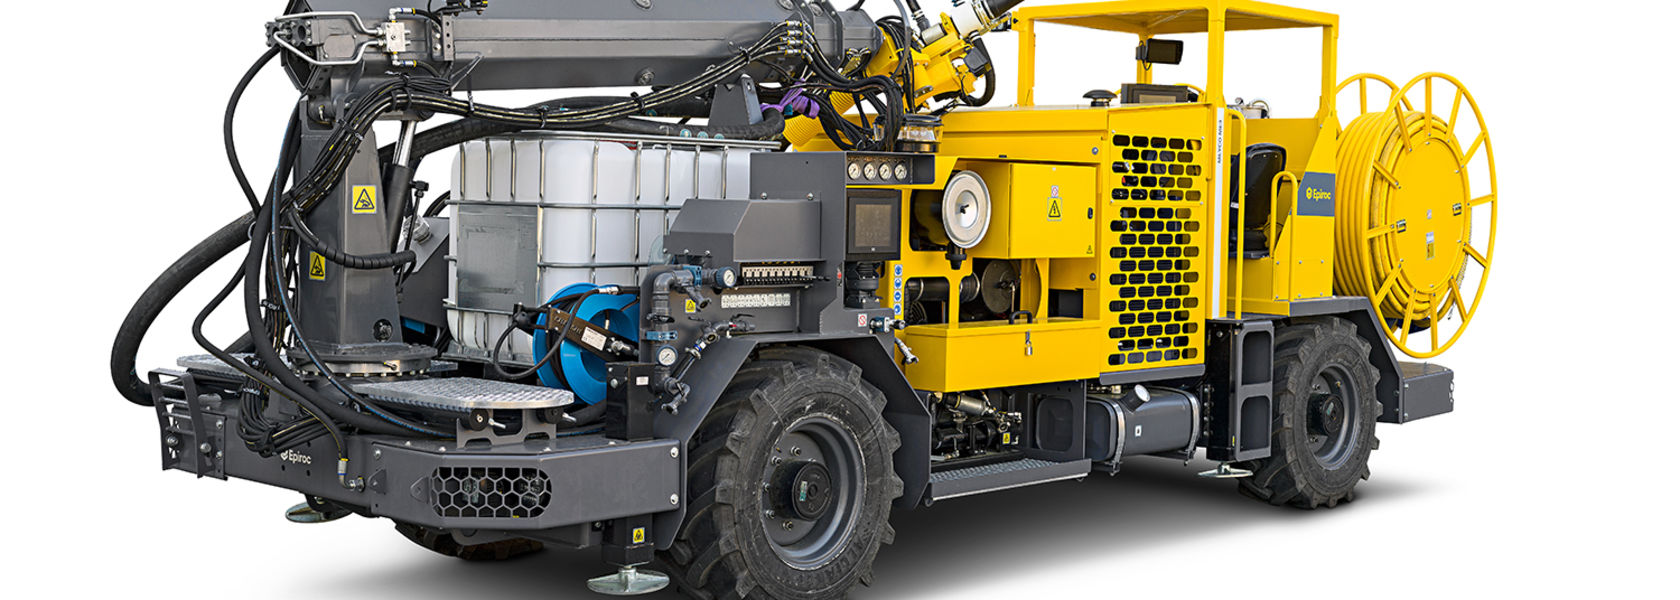 Epiroc upgrades Meyco ME3 concrete sprayer